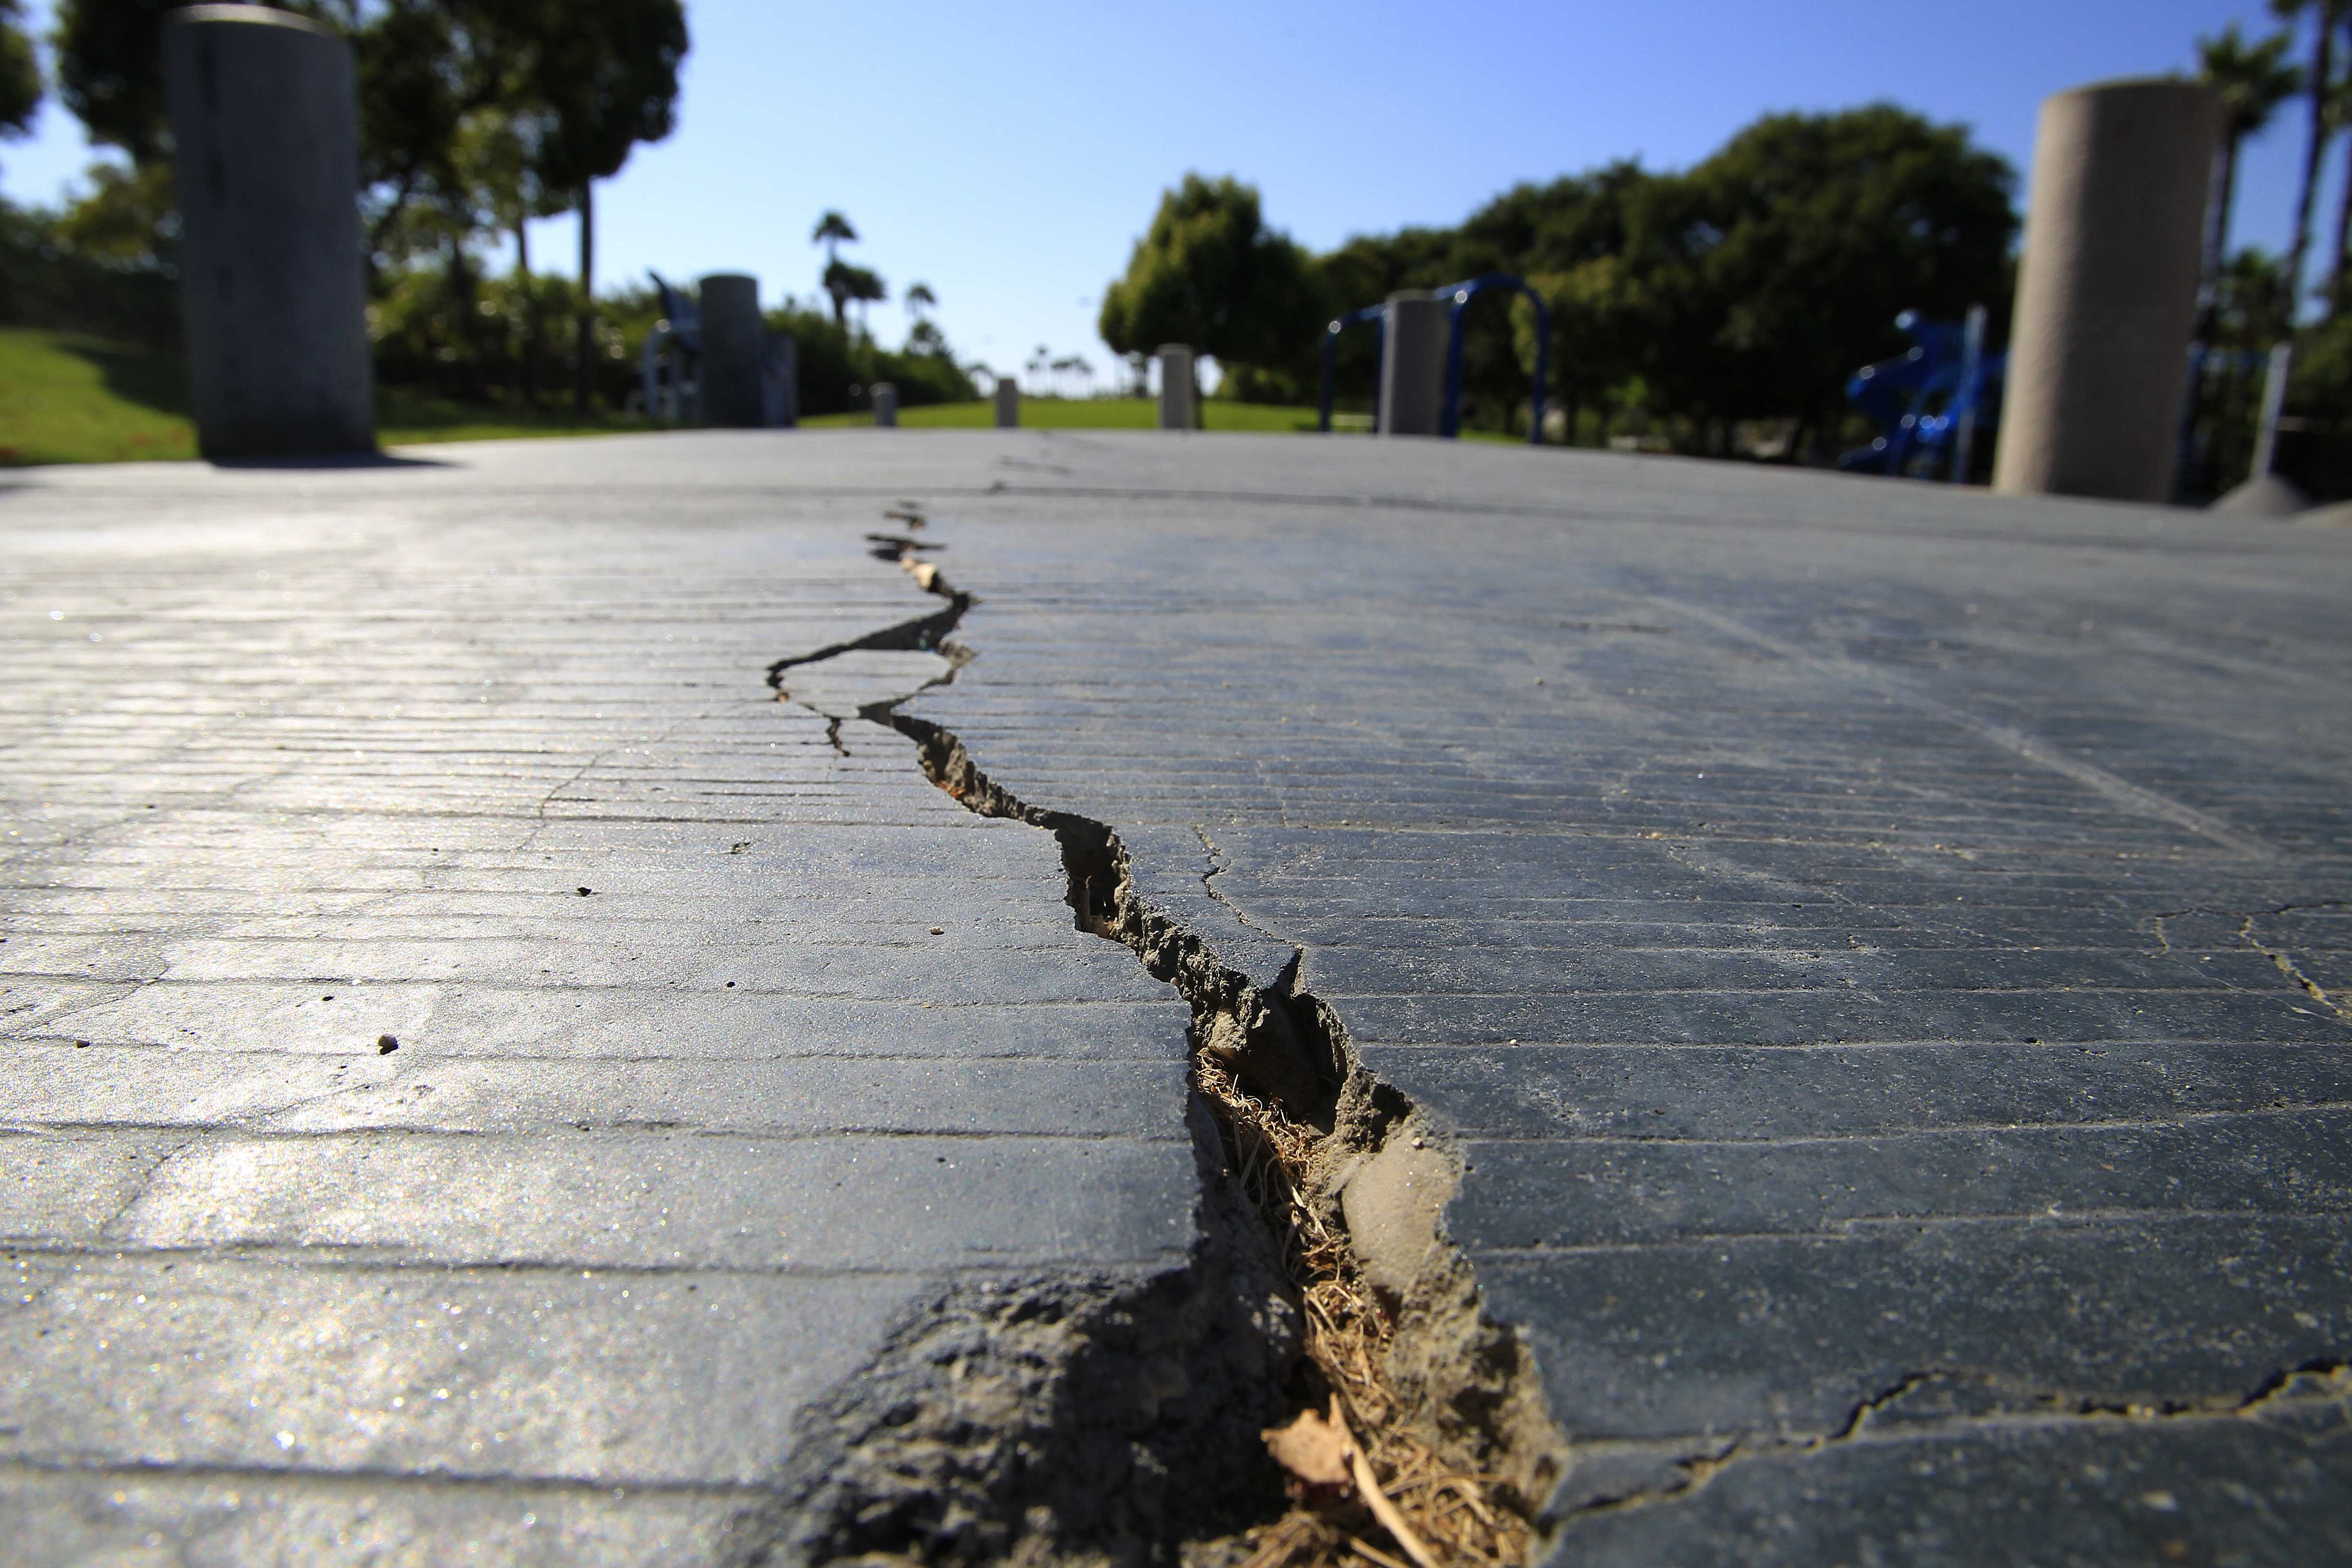 Cracks in the sidewalk pictured